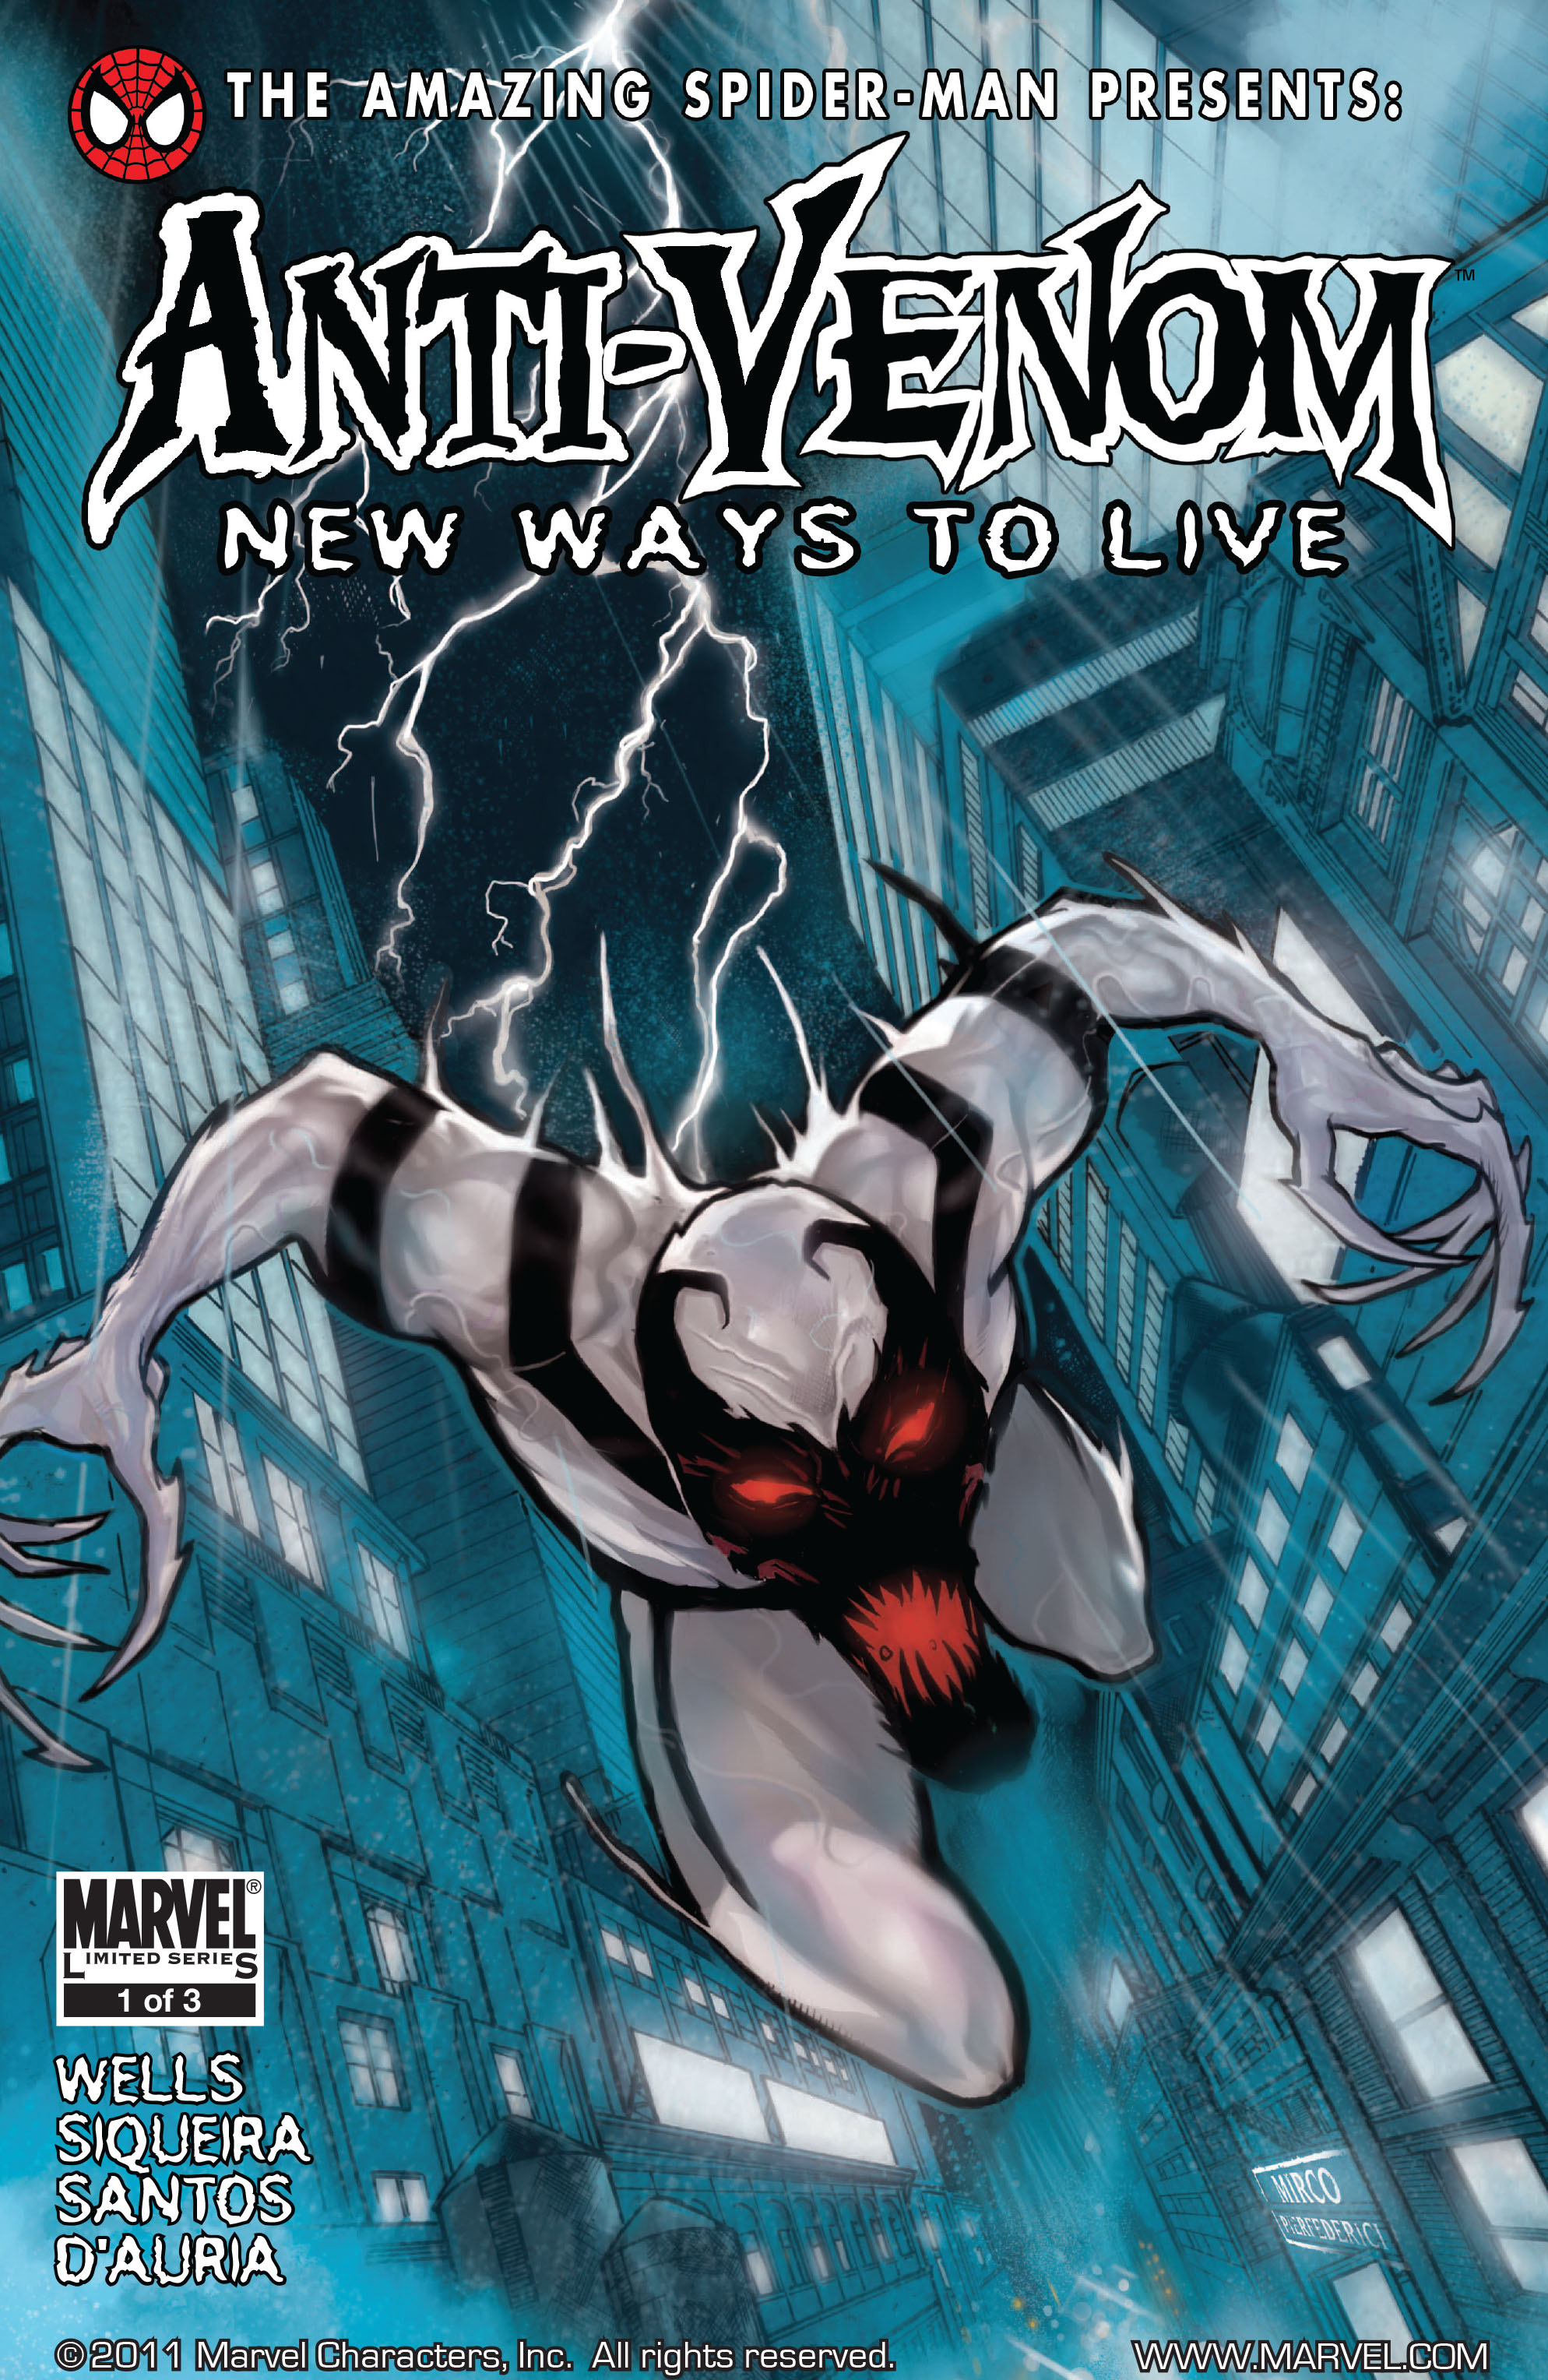 Read online Amazing Spider-Man Presents: Anti-Venom - New Ways To Live comic -  Issue # _TPB - 2